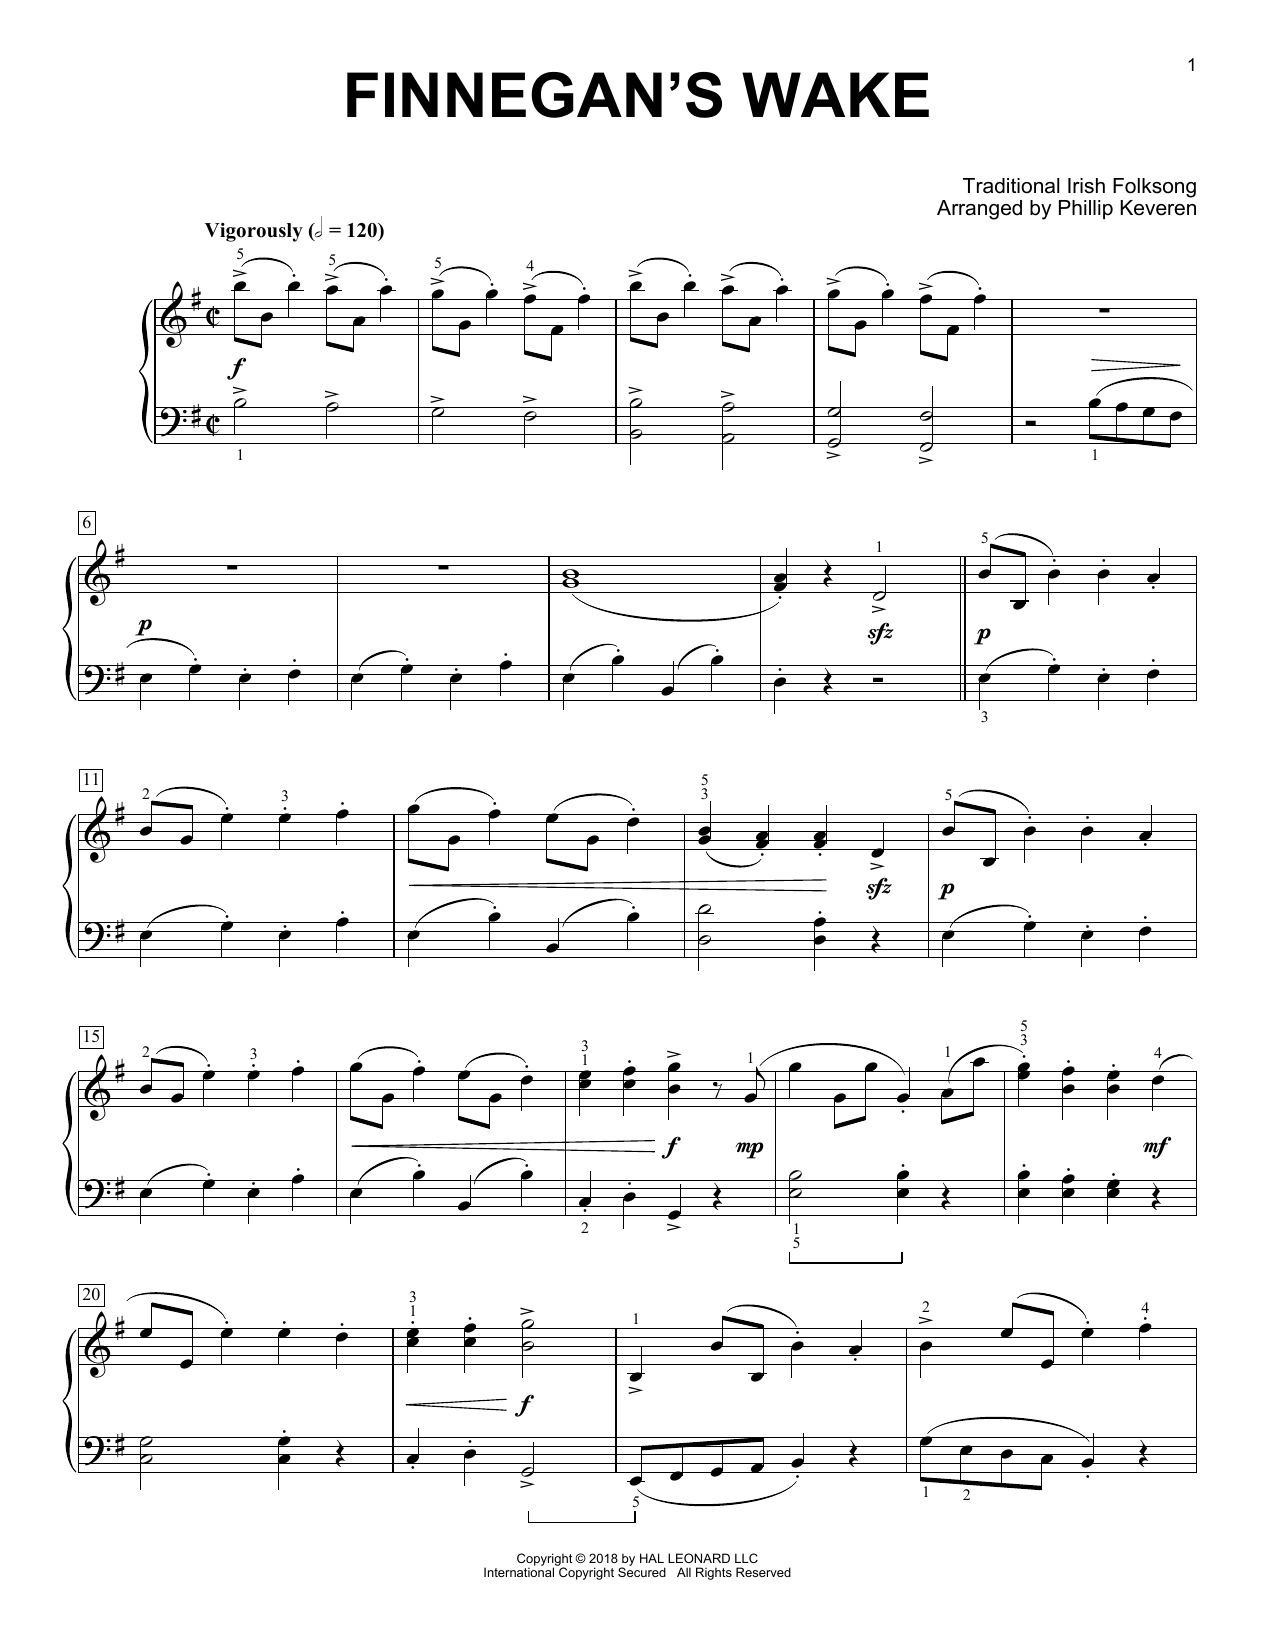 Traditional Irish Folk Song Finnegan's Wake [Classical version] (arr. Phillip Keveren) sheet music notes and chords. Download Printable PDF.